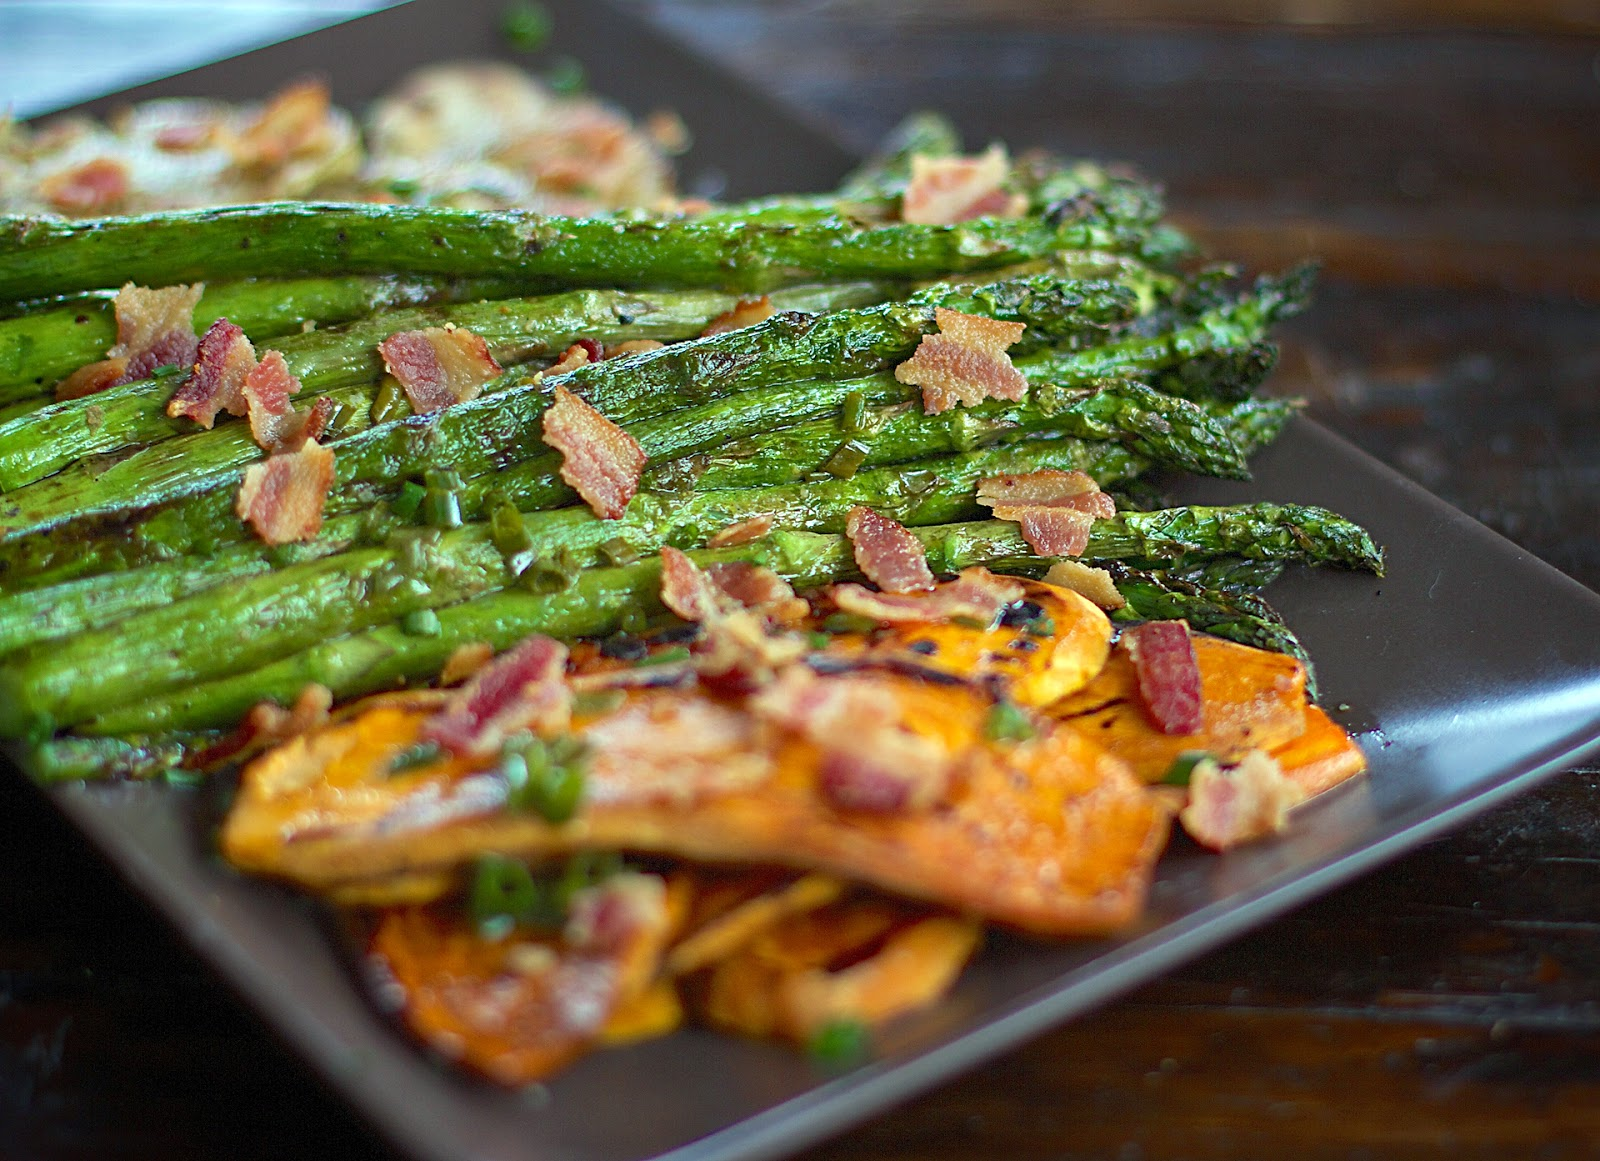 Local Food Rocks: Grilled Asparagus + Potatoes with Bacon